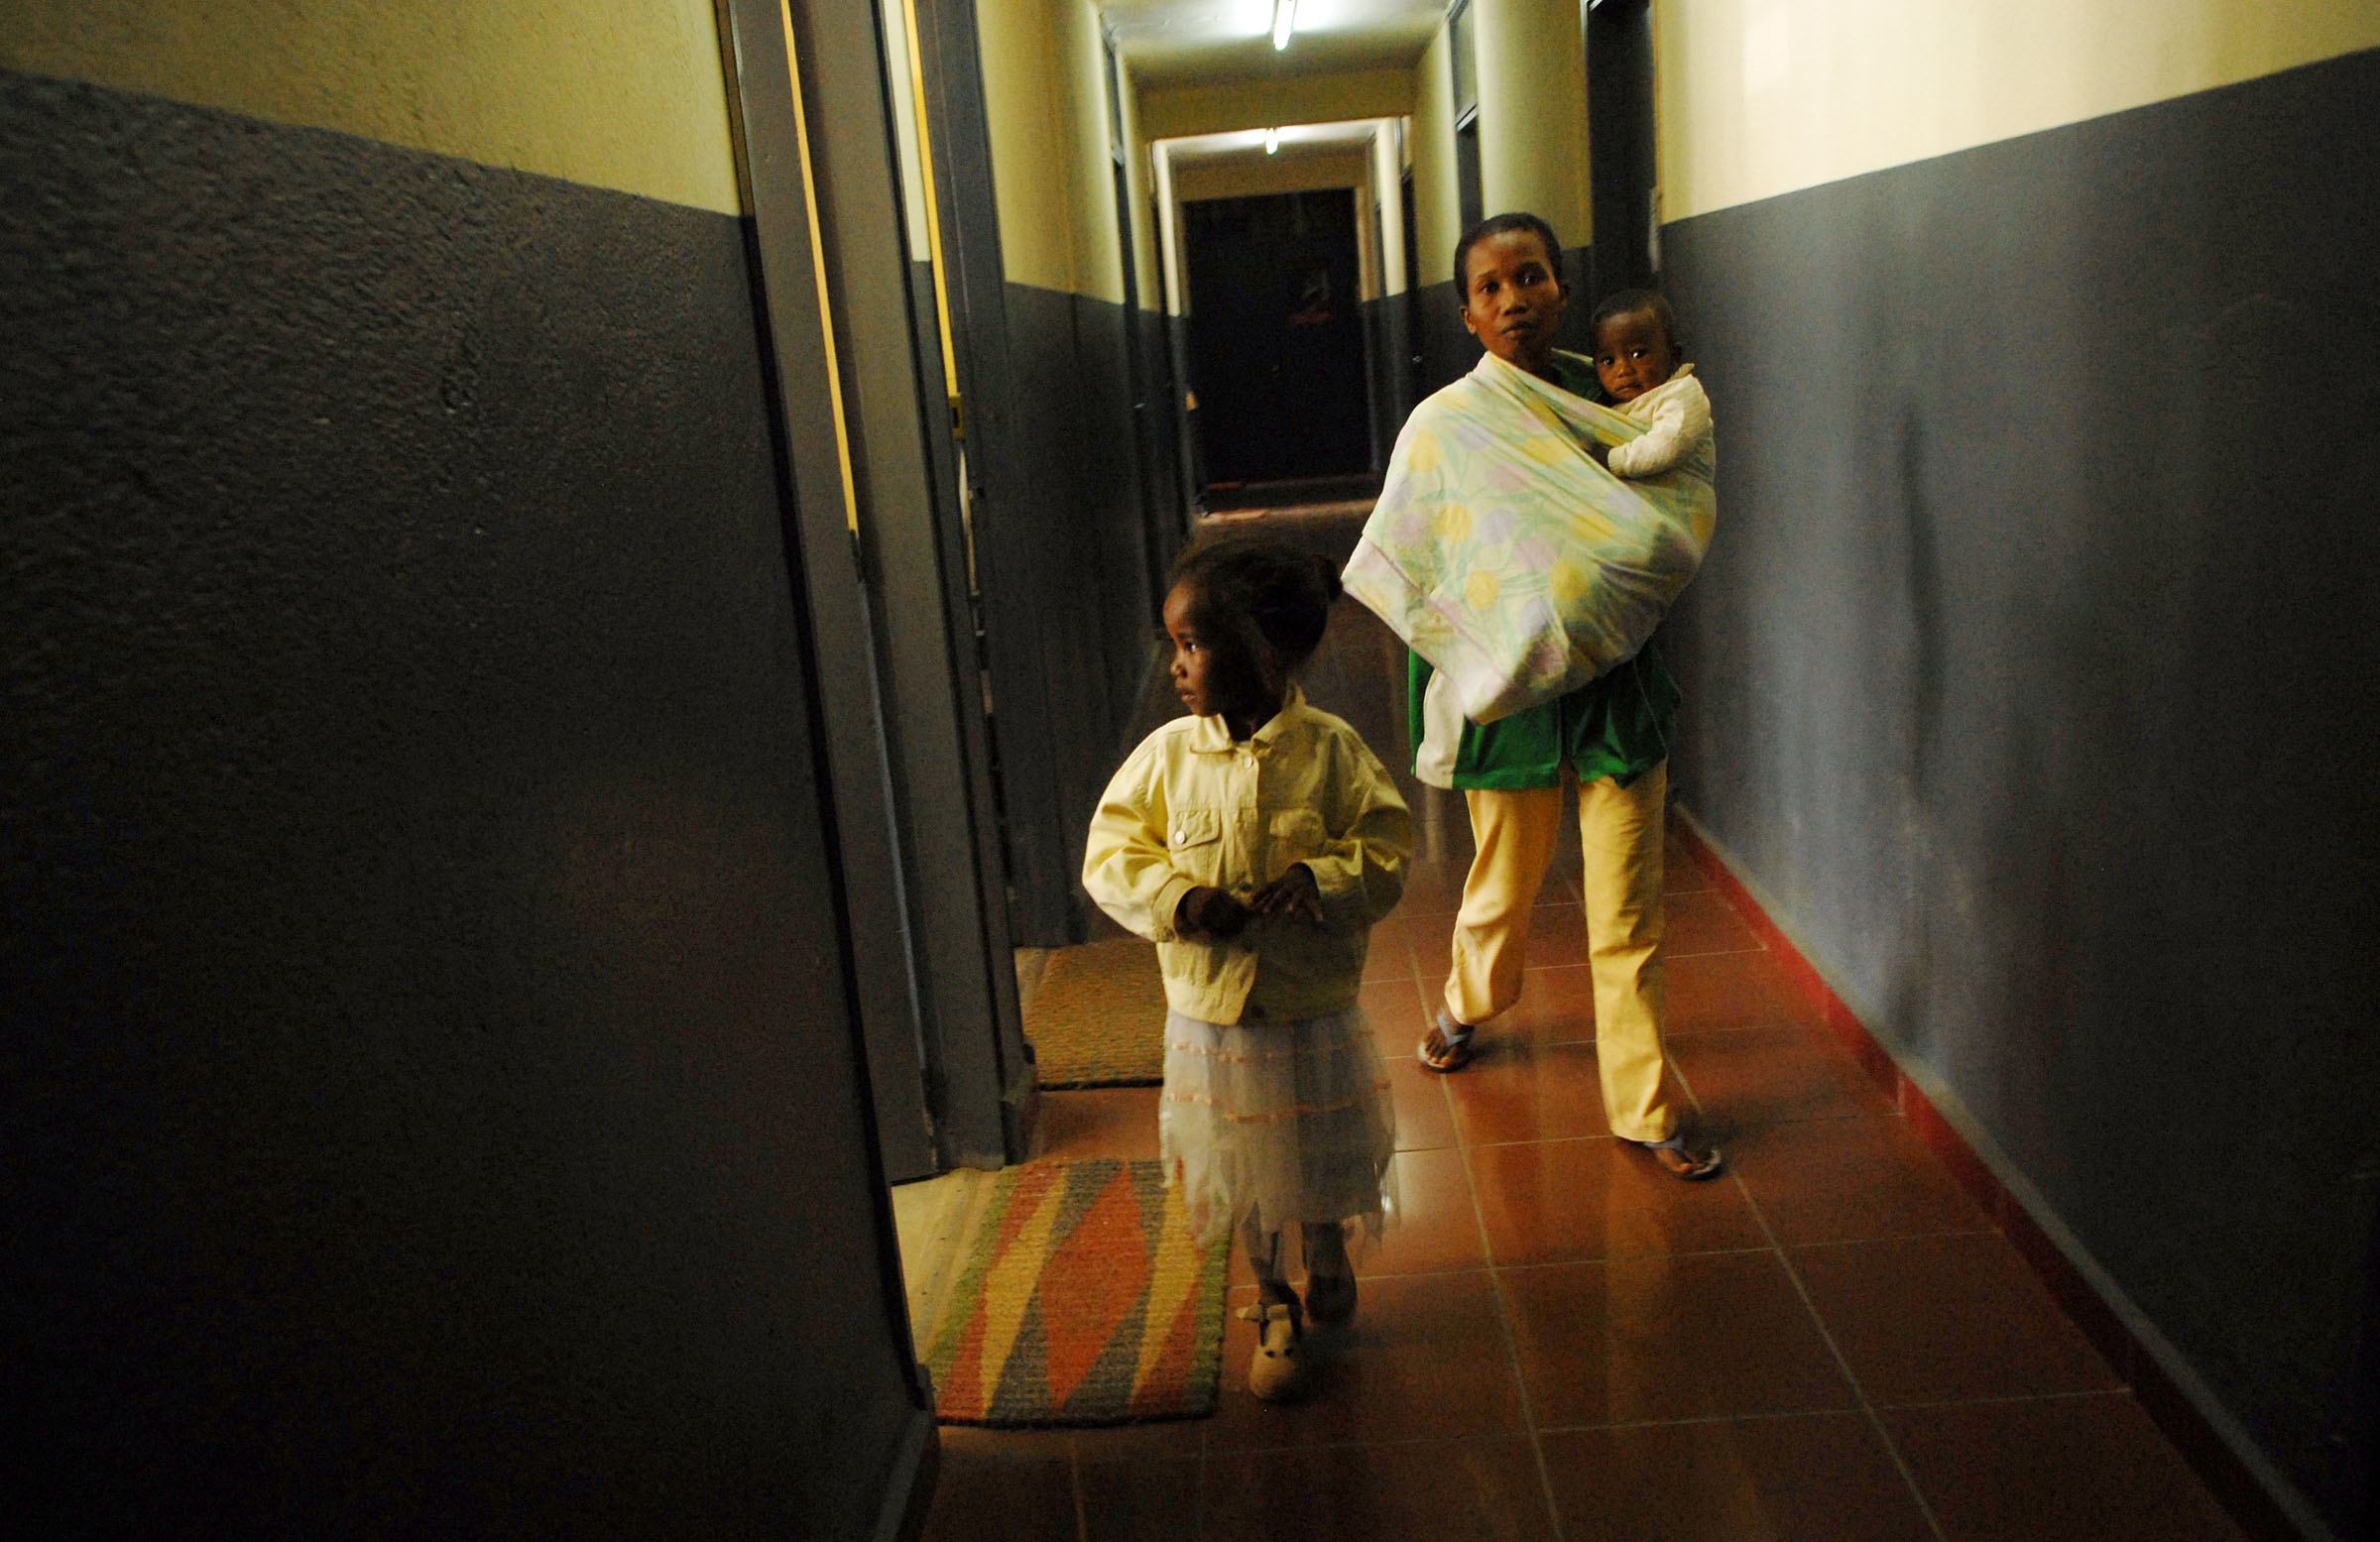 Menja, 5 years old, walks with her mother, Domoina Rahahntanirina, through the halls of the police department while on their way to court to fight a case of sexual assault in Antananivarro, Madagascar, November 9, 2006.  Menja was molested by her uncle one night, and told her mother of the crime, and subseqently identified him in court as the perpetrator. Domoina, who lives with her four children in this one room, did not have enough money to pay the $15. fee for a medical exam for her daughter, facing the same dilemma as many poor Malagassy who do not have enough money to file a case for a victim of sexual assault.  She eventually came up with the money, and the husband of her sister, the perpetrator, is now in jail.